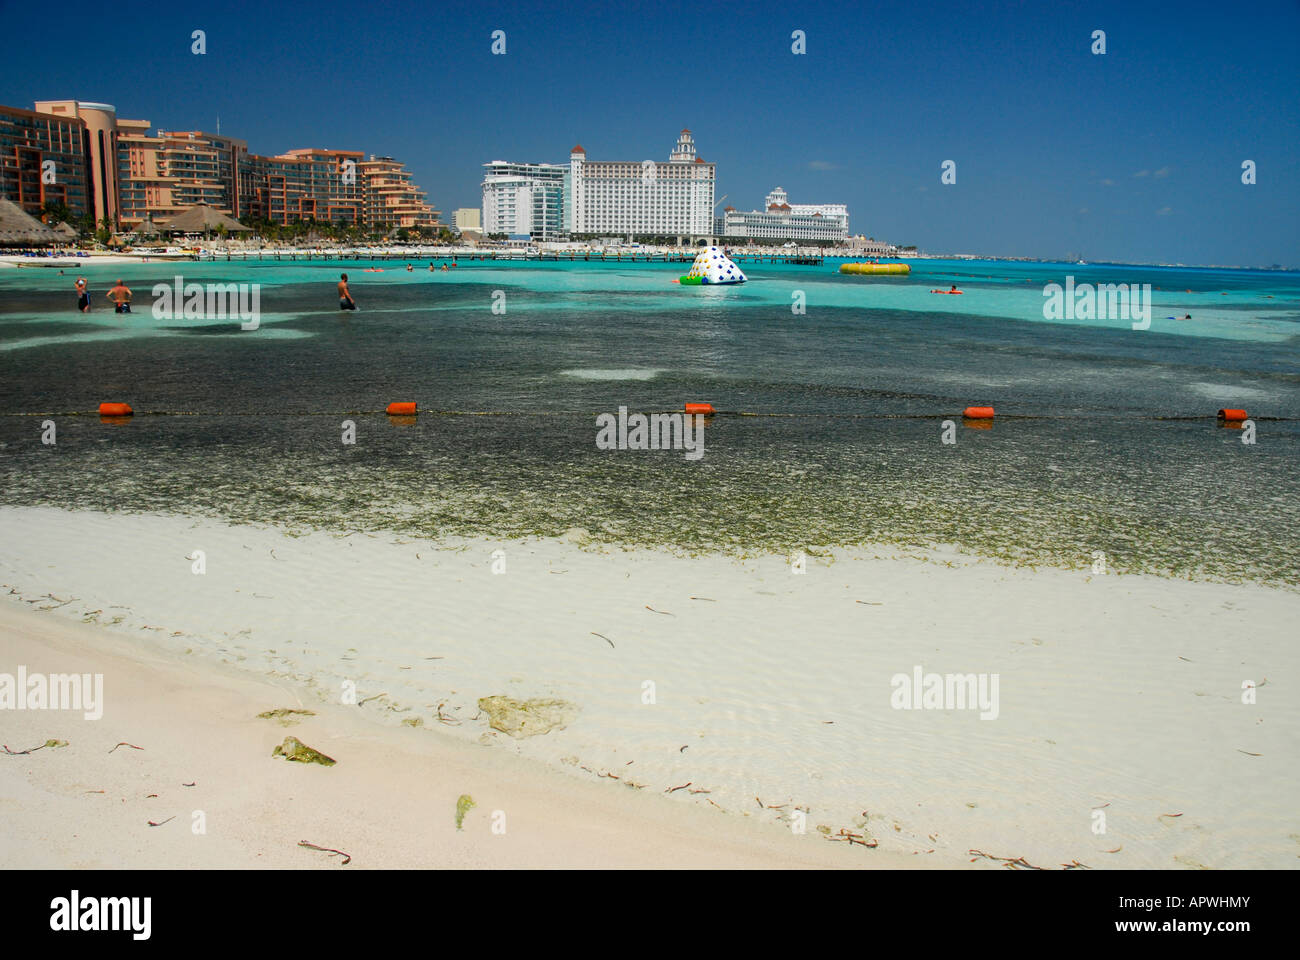 Beach in Cancun hotel area, Quintana Roo State, Mexico, North America Stock Photo